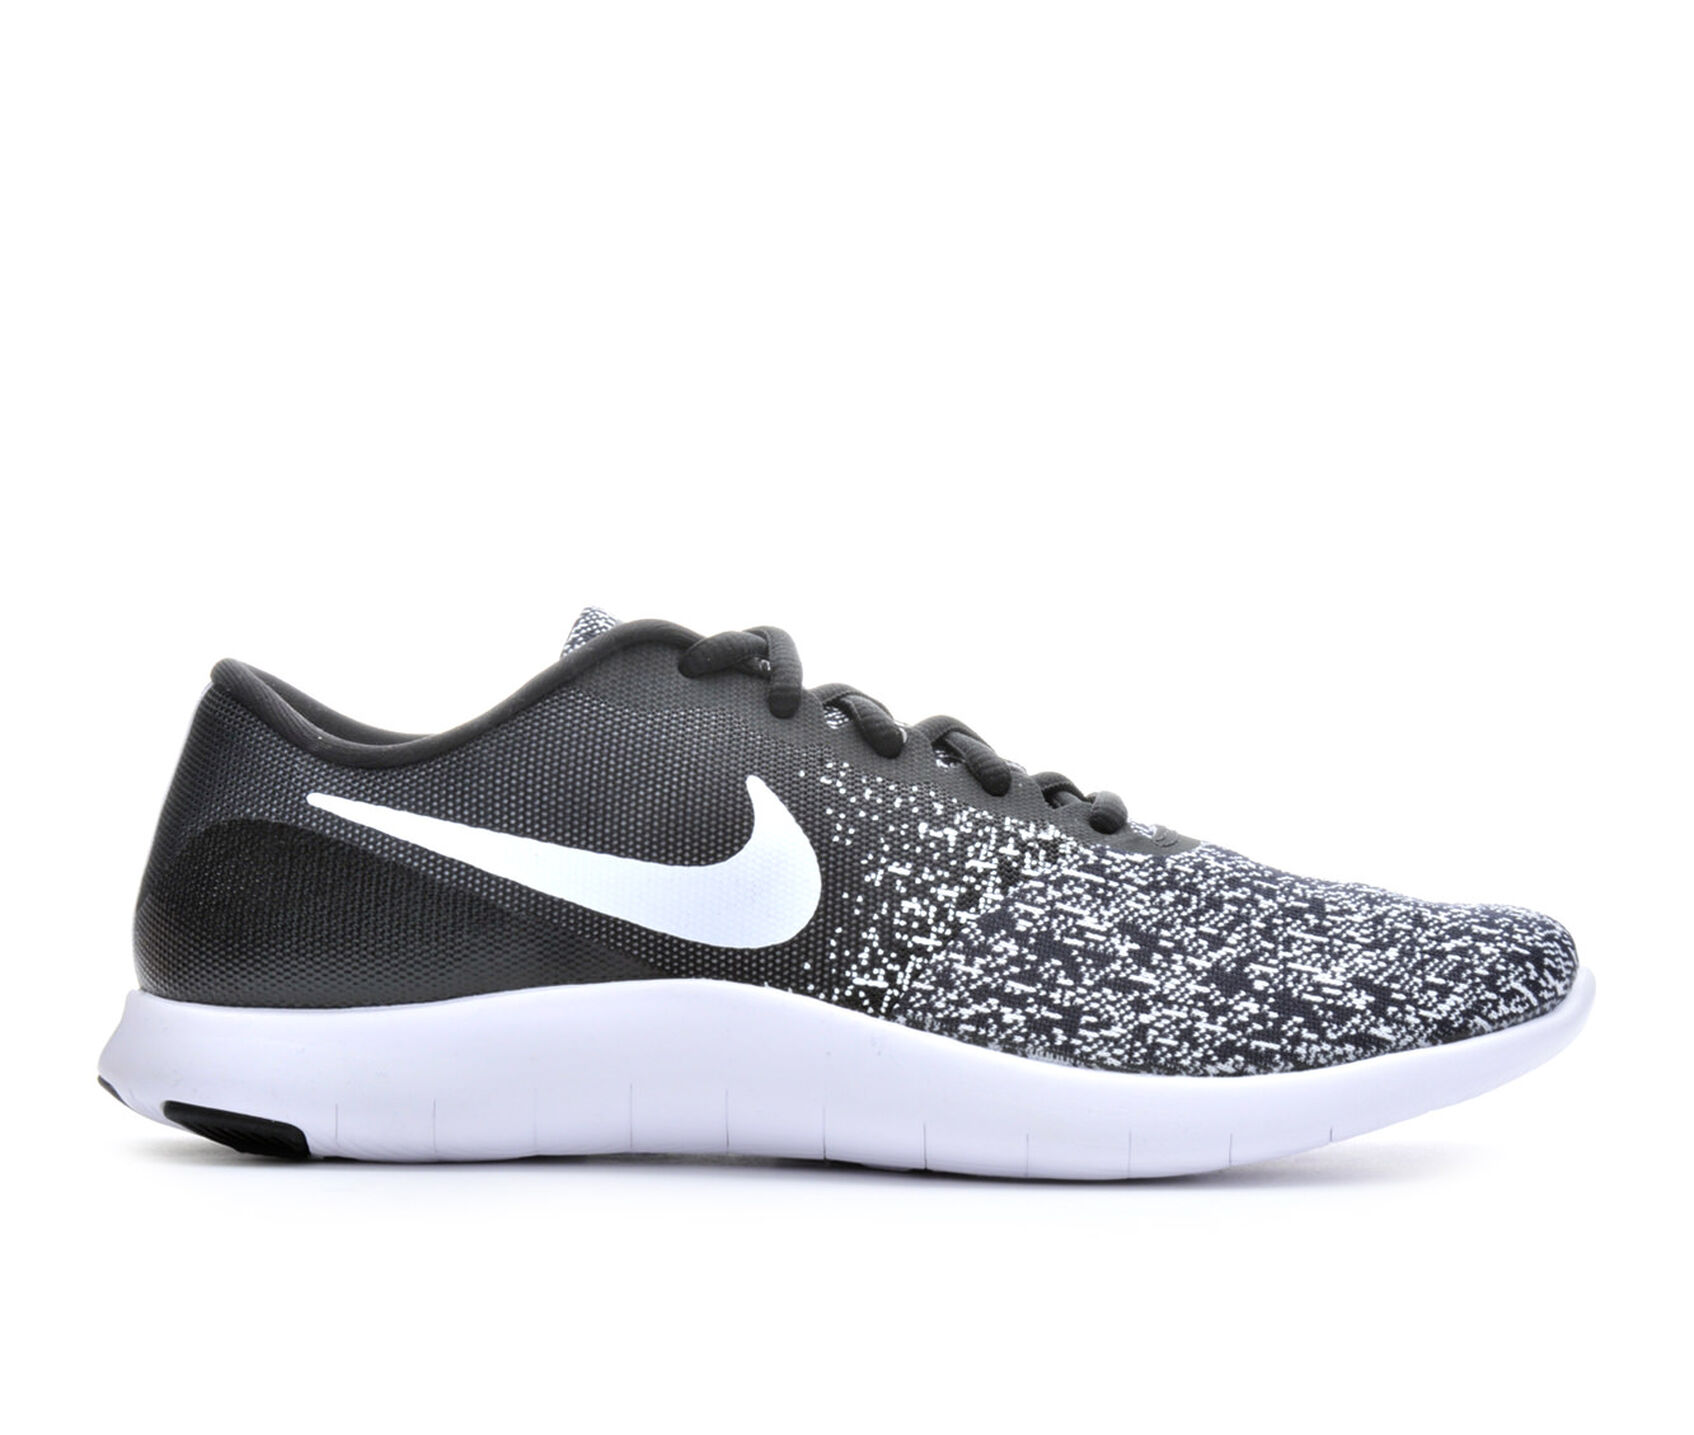 52c5d054772e6 ... Nike Flex Contact Running Shoes. Previous